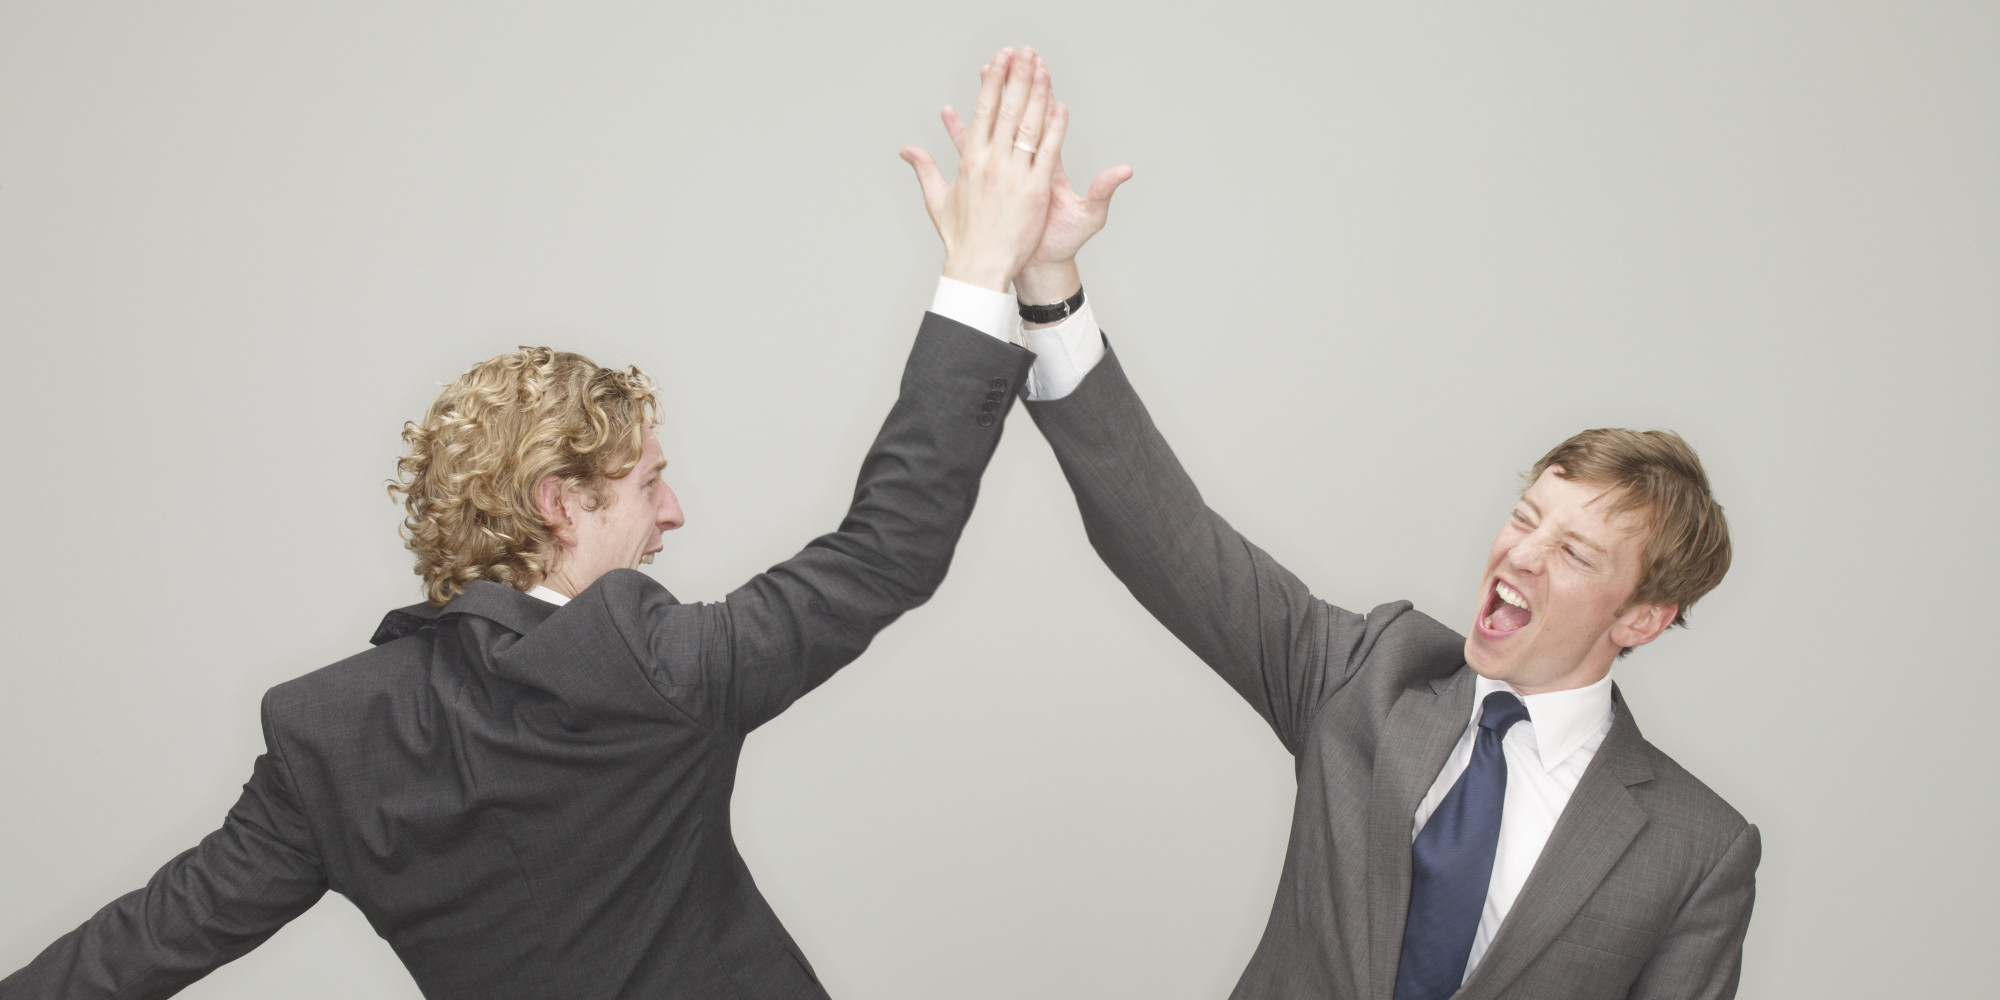 ... Missouri State Rep., Wants 'High Five' To Be Official State Greeting